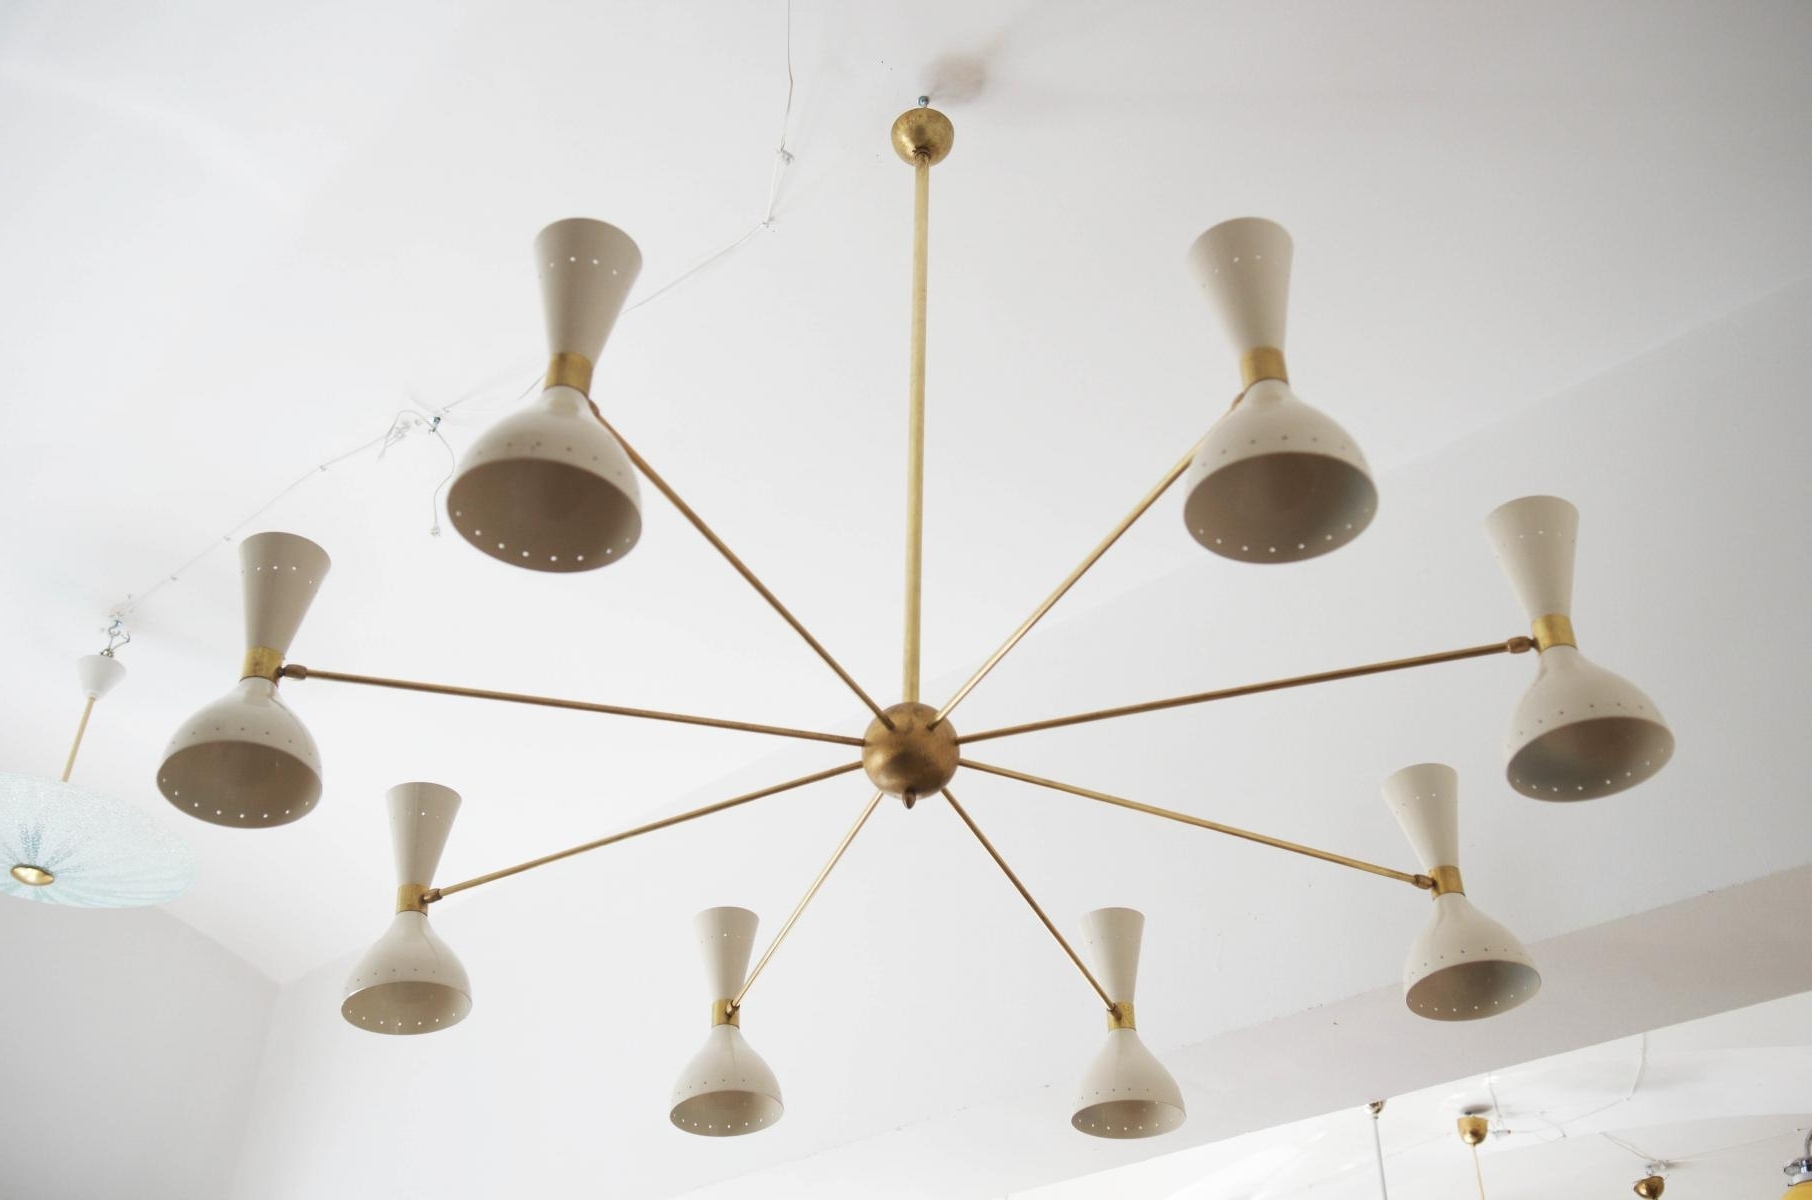 Newest Large Brass Chandelier With Regard To Mid Century Large Brass Chandelier, 1950S For Sale At Pamono (Gallery 2 of 20)